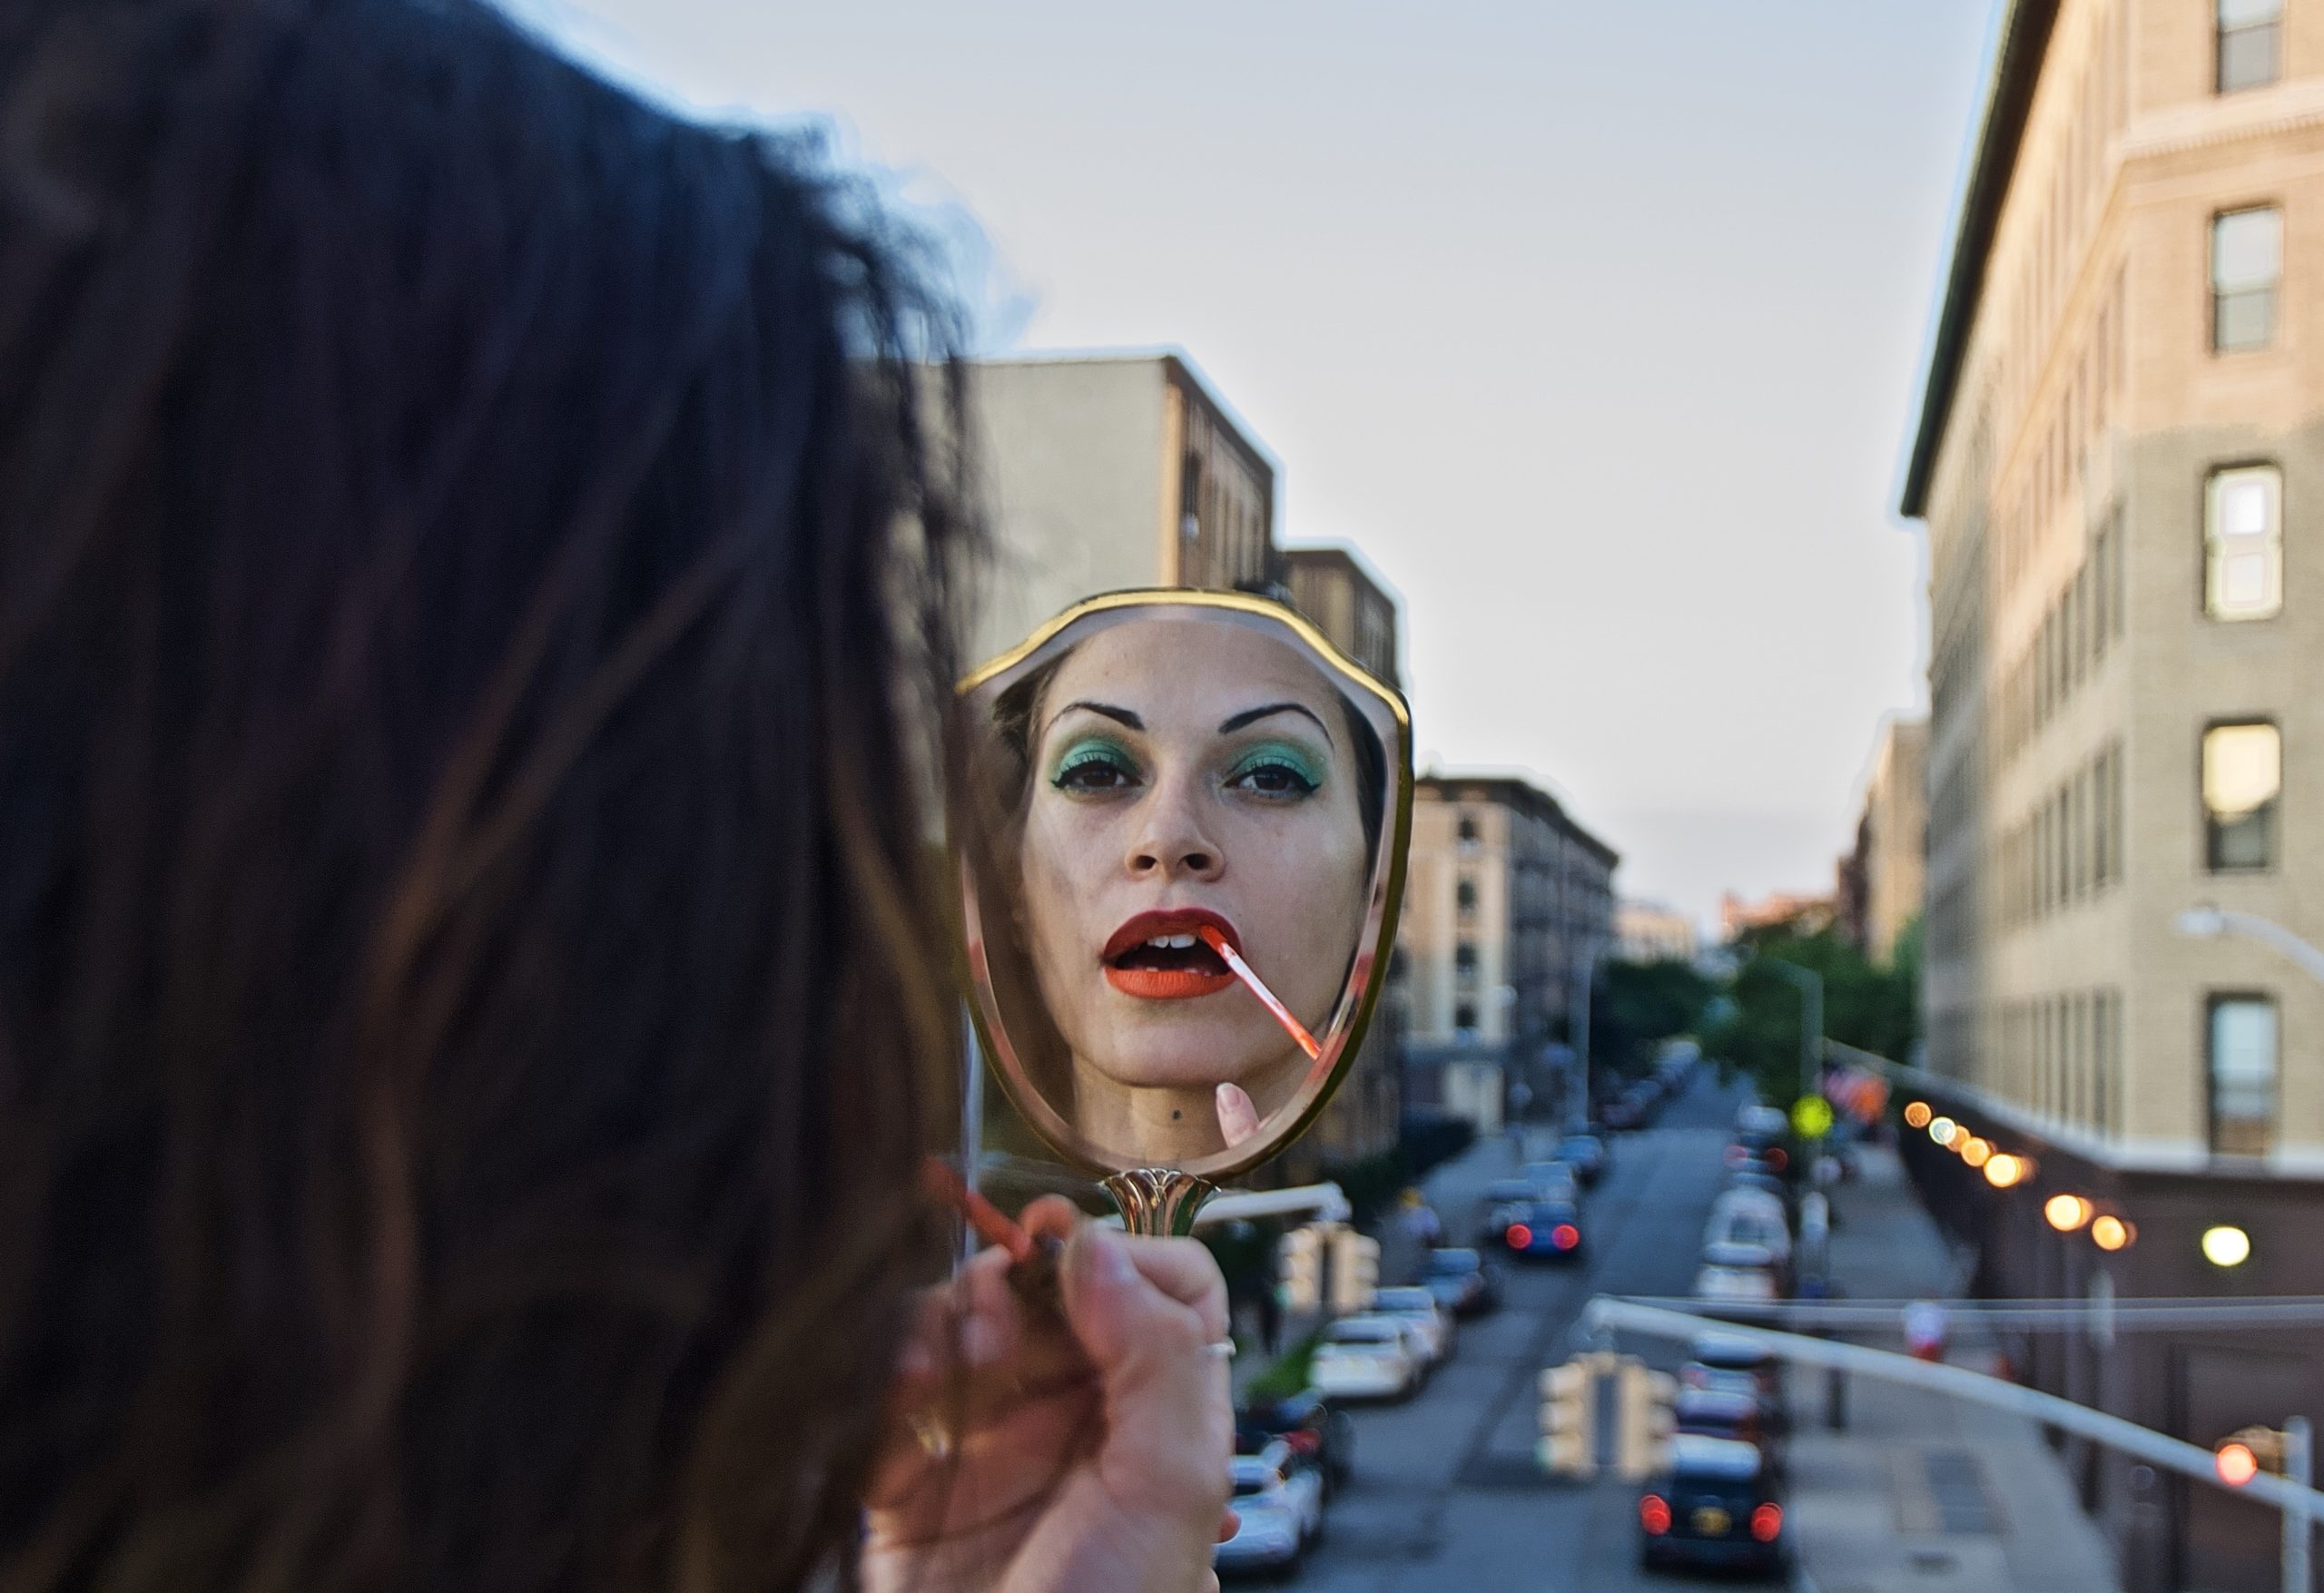 Grandma's Mirror ll (Jennifer looking down from the street she grew up at) 2019, Crotona Park, Bronx, NYC. Friday, August 30, 2019, 7:23 PM (74 degrees). © Ruben Natal-San Miguel. Courtesy of Ruben Natal-San Miguel & Postmasters Gallery.